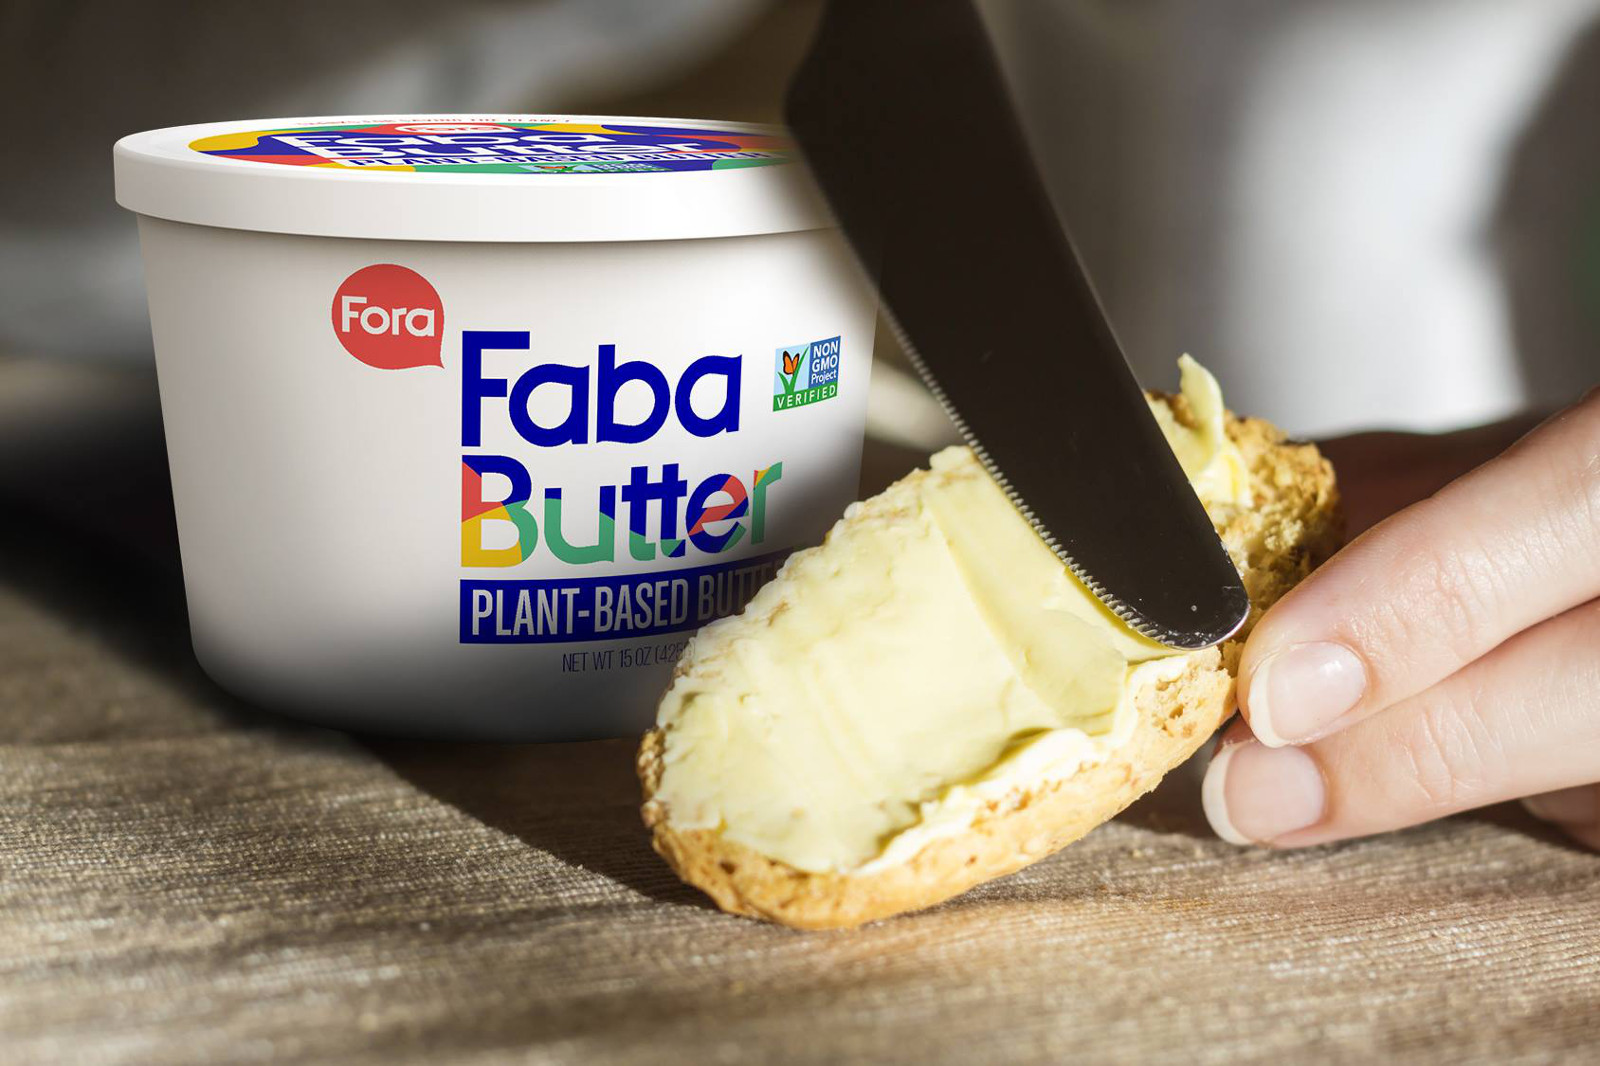 This Butter Is Palm Oil Free, Dairy-Free, Soy-Free ... And It's All Vegan